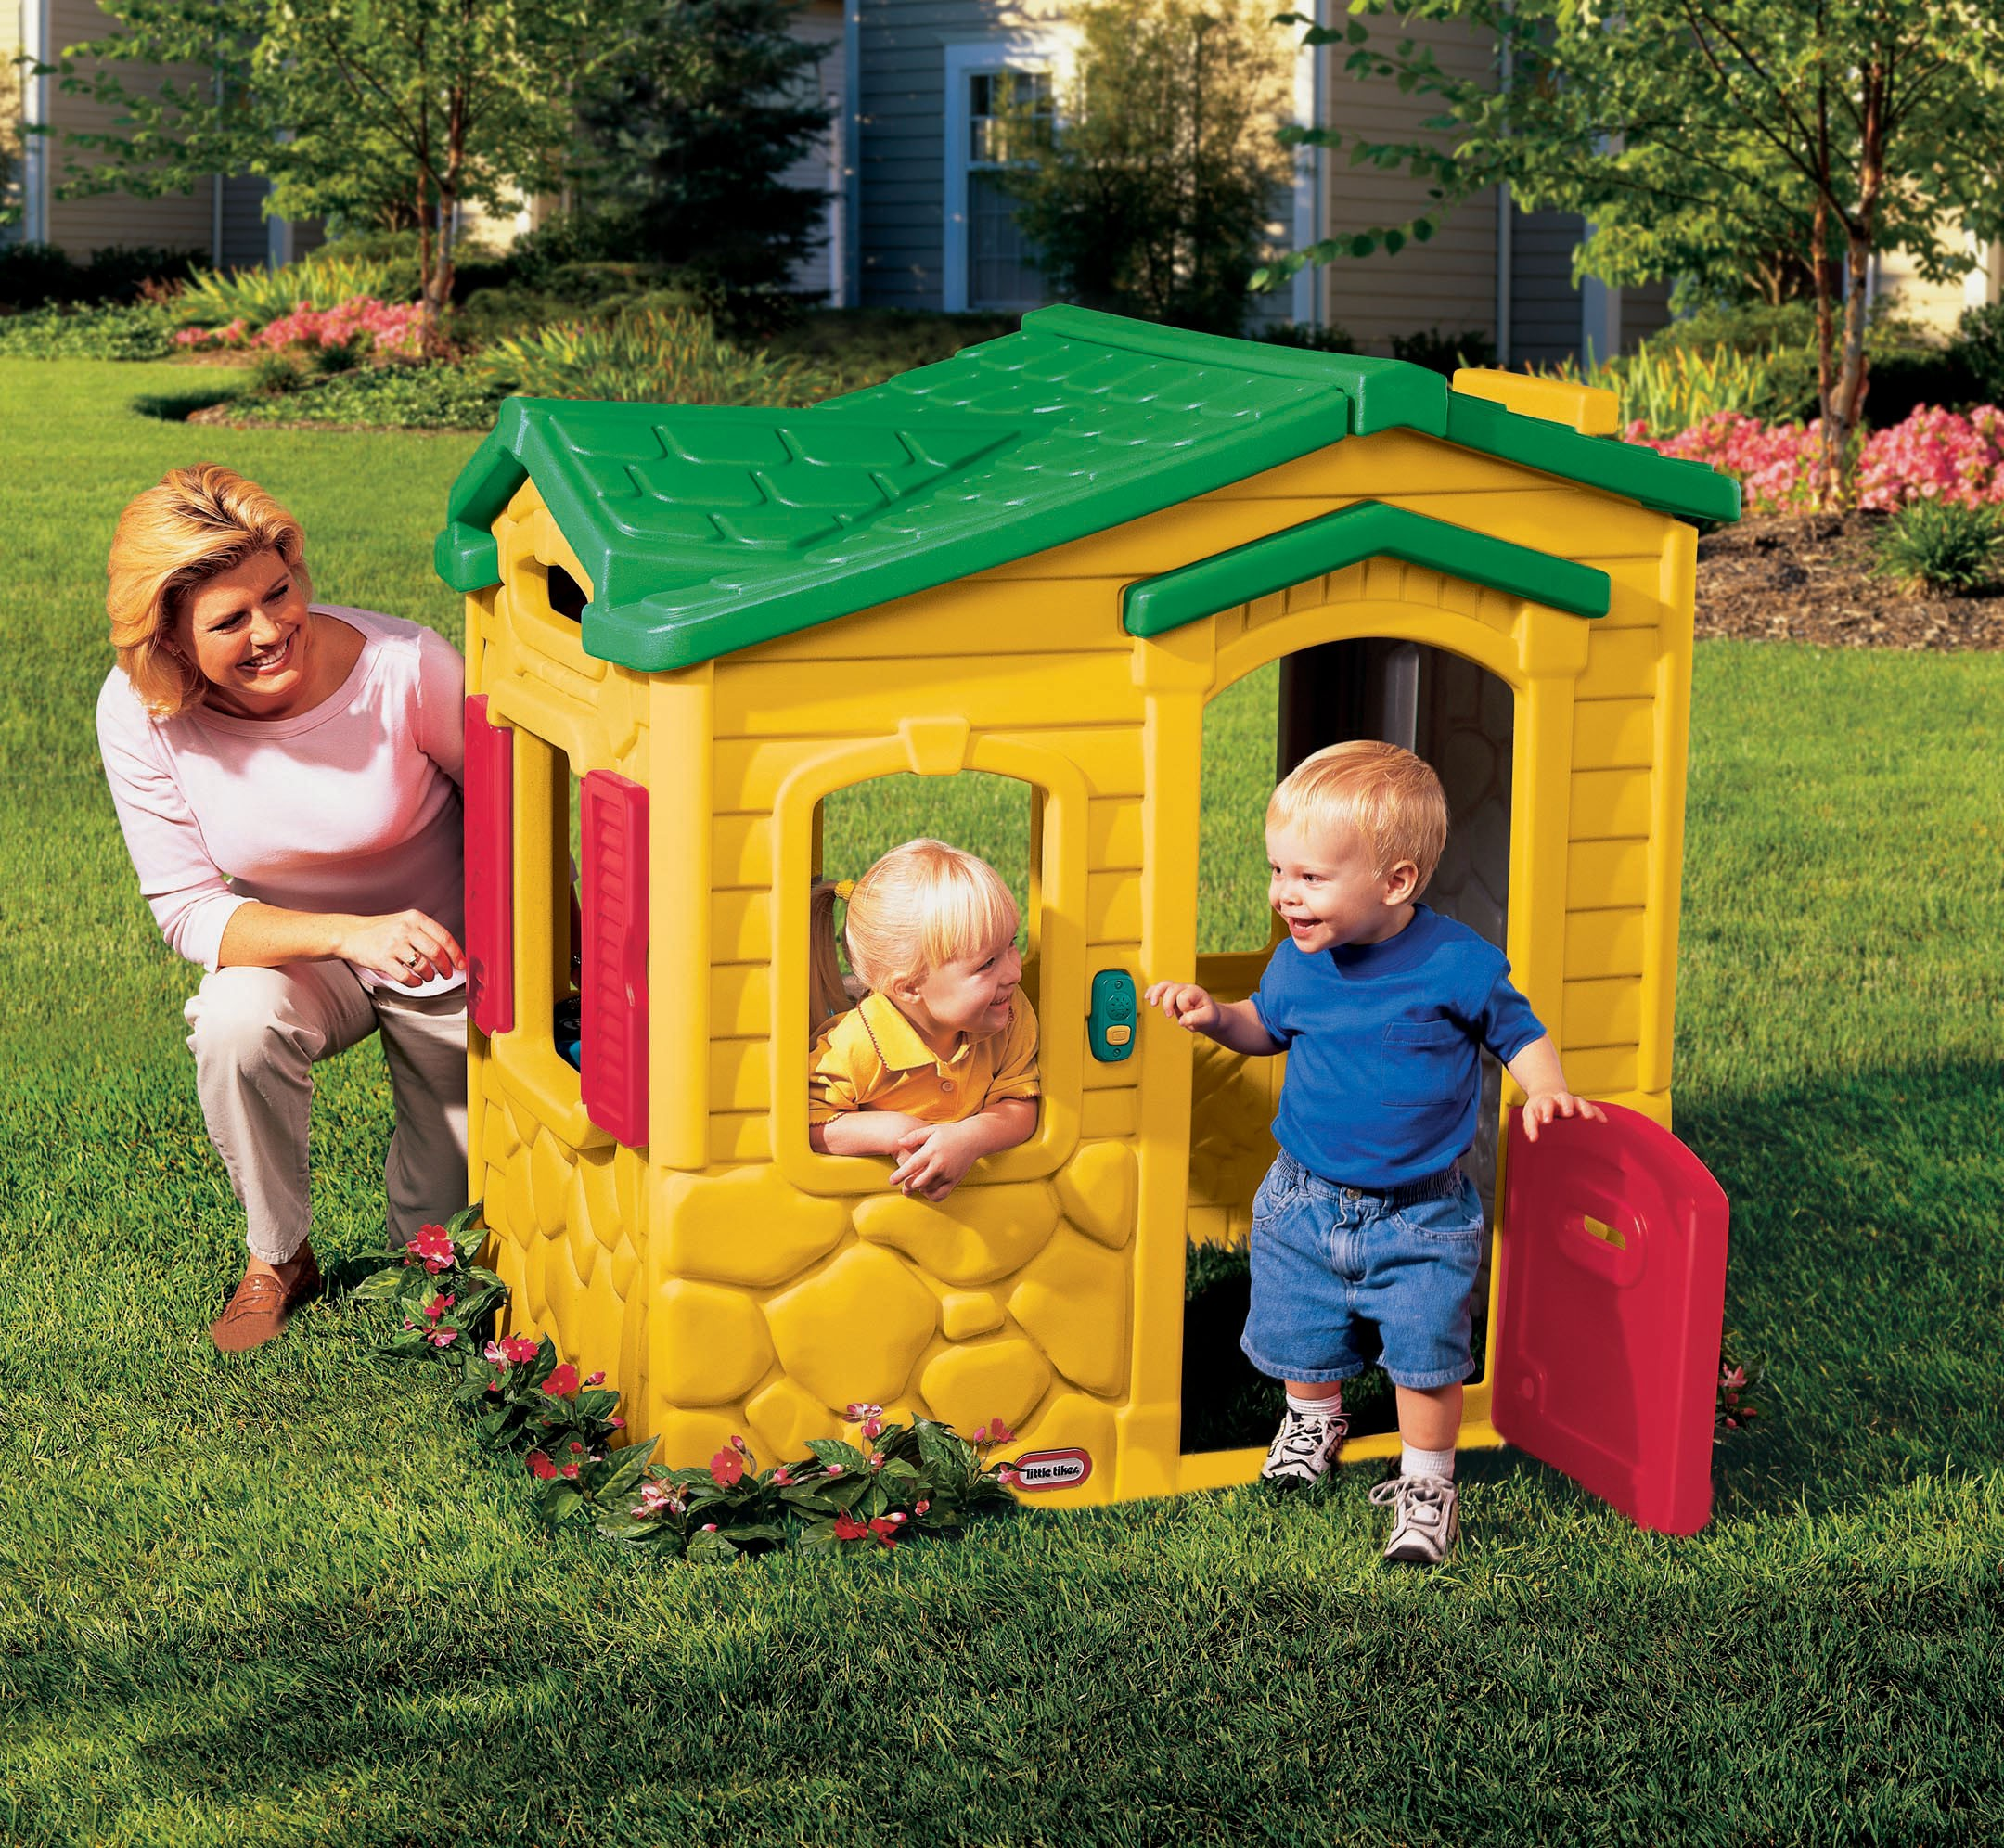 Wonderful Little Tikes Playhouse With Yellow Siding And Green Roof For Playground Decor Ideas